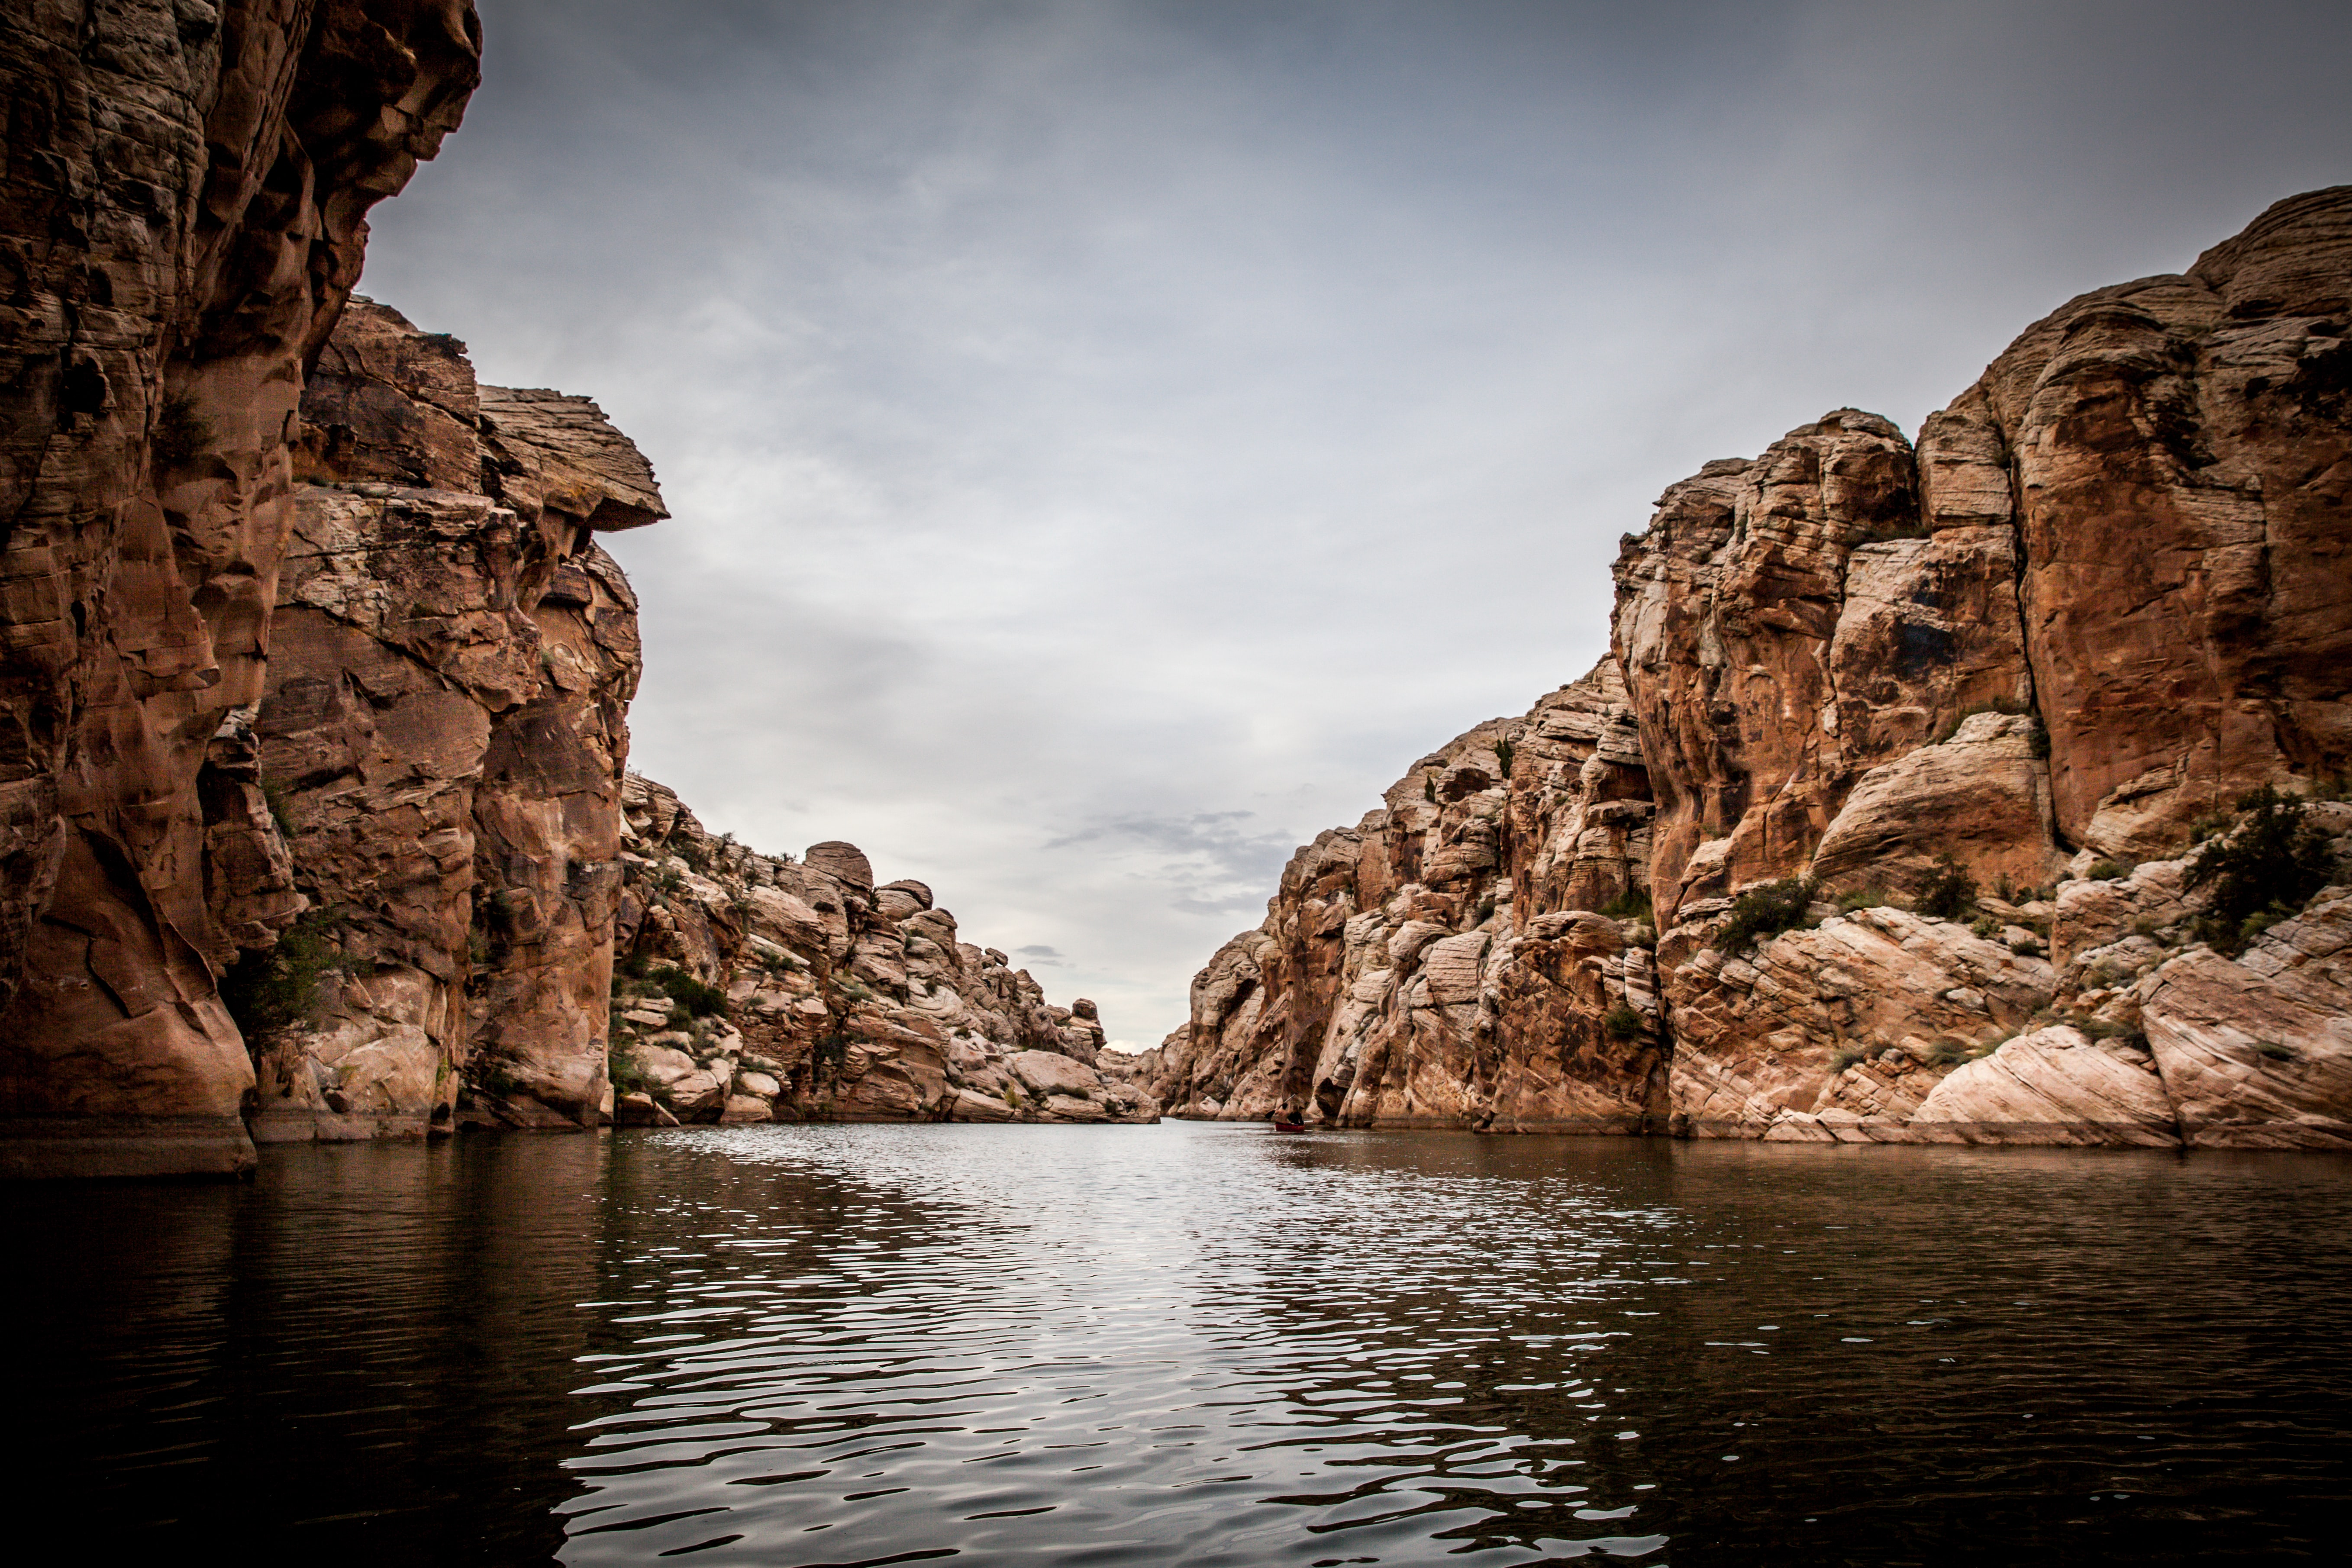 brown cliffs in front of body of water during cloudy sky